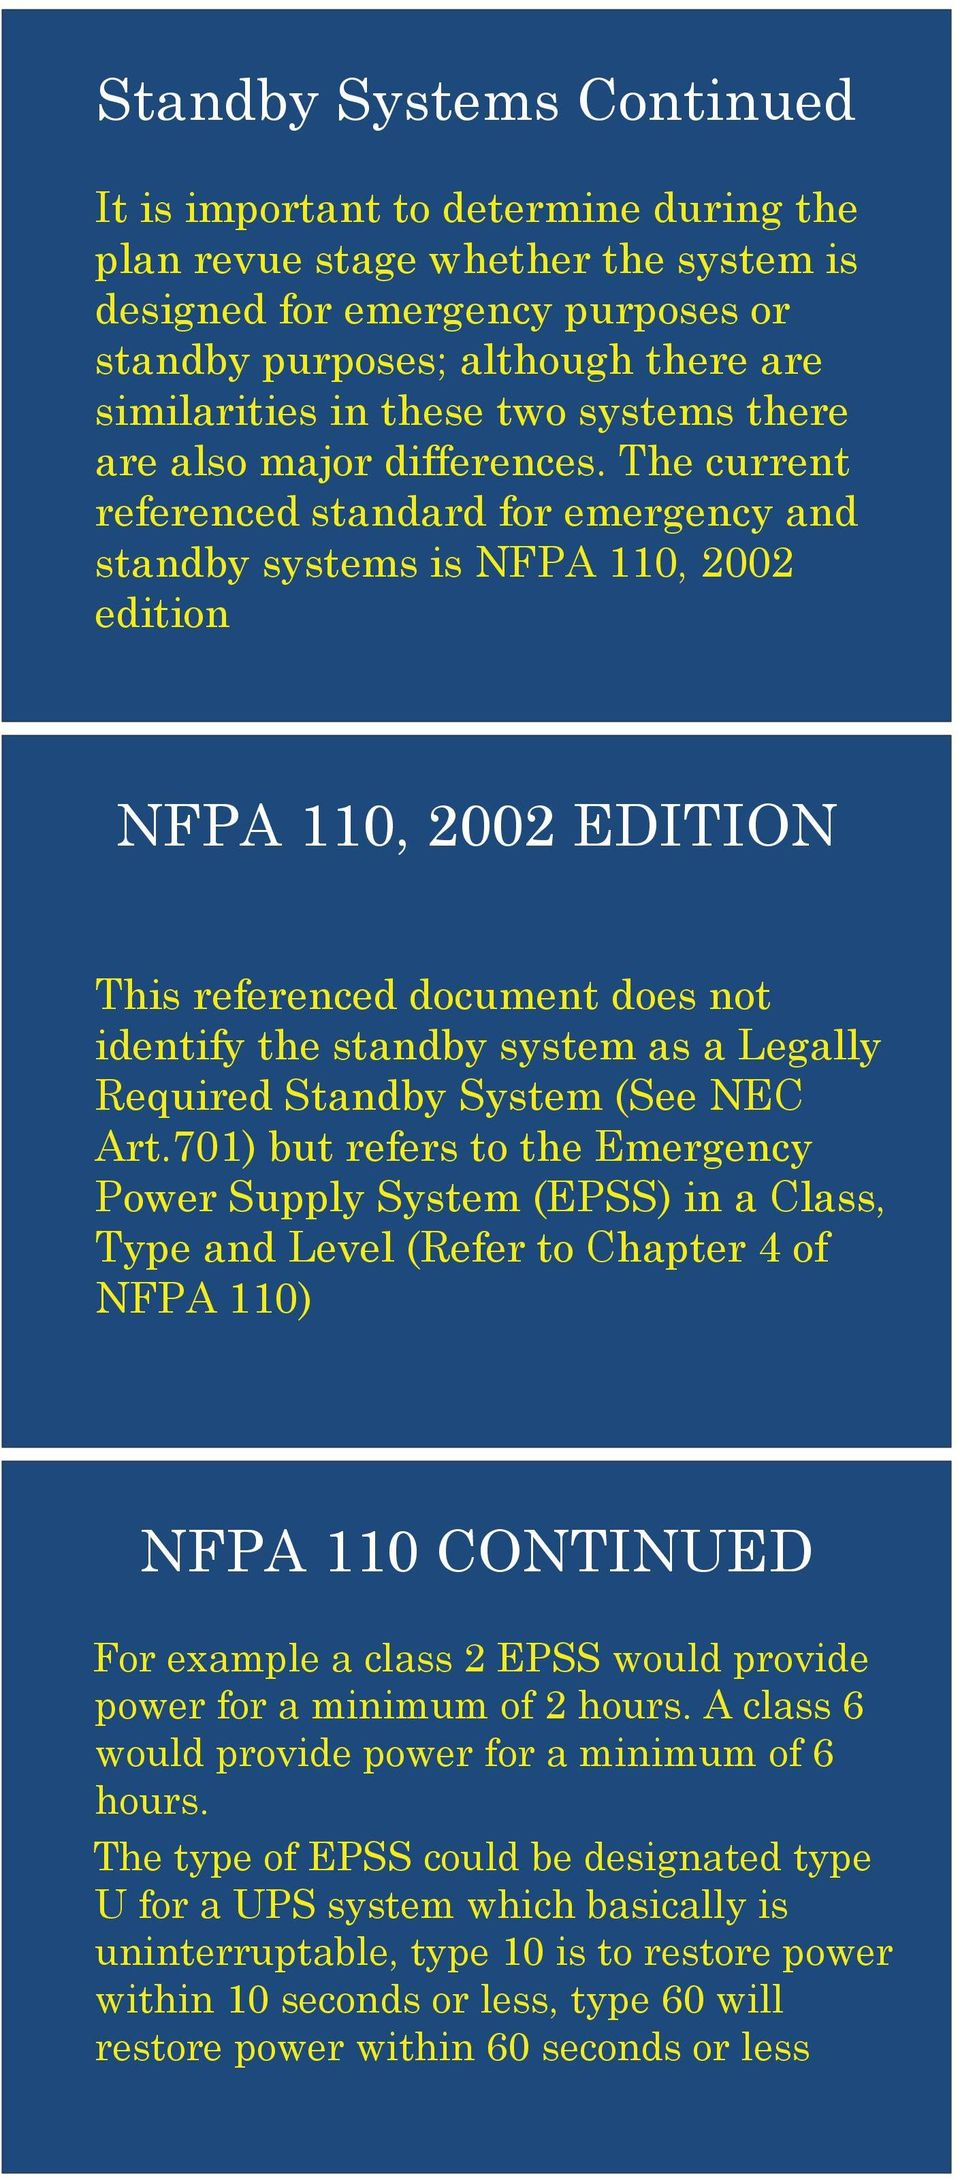 The current referenced standard for emergency and standby systems is NFPA 110, 2002 edition NFPA 110, 2002 EDITION This referenced document does not identify the standby system as a Legally Required